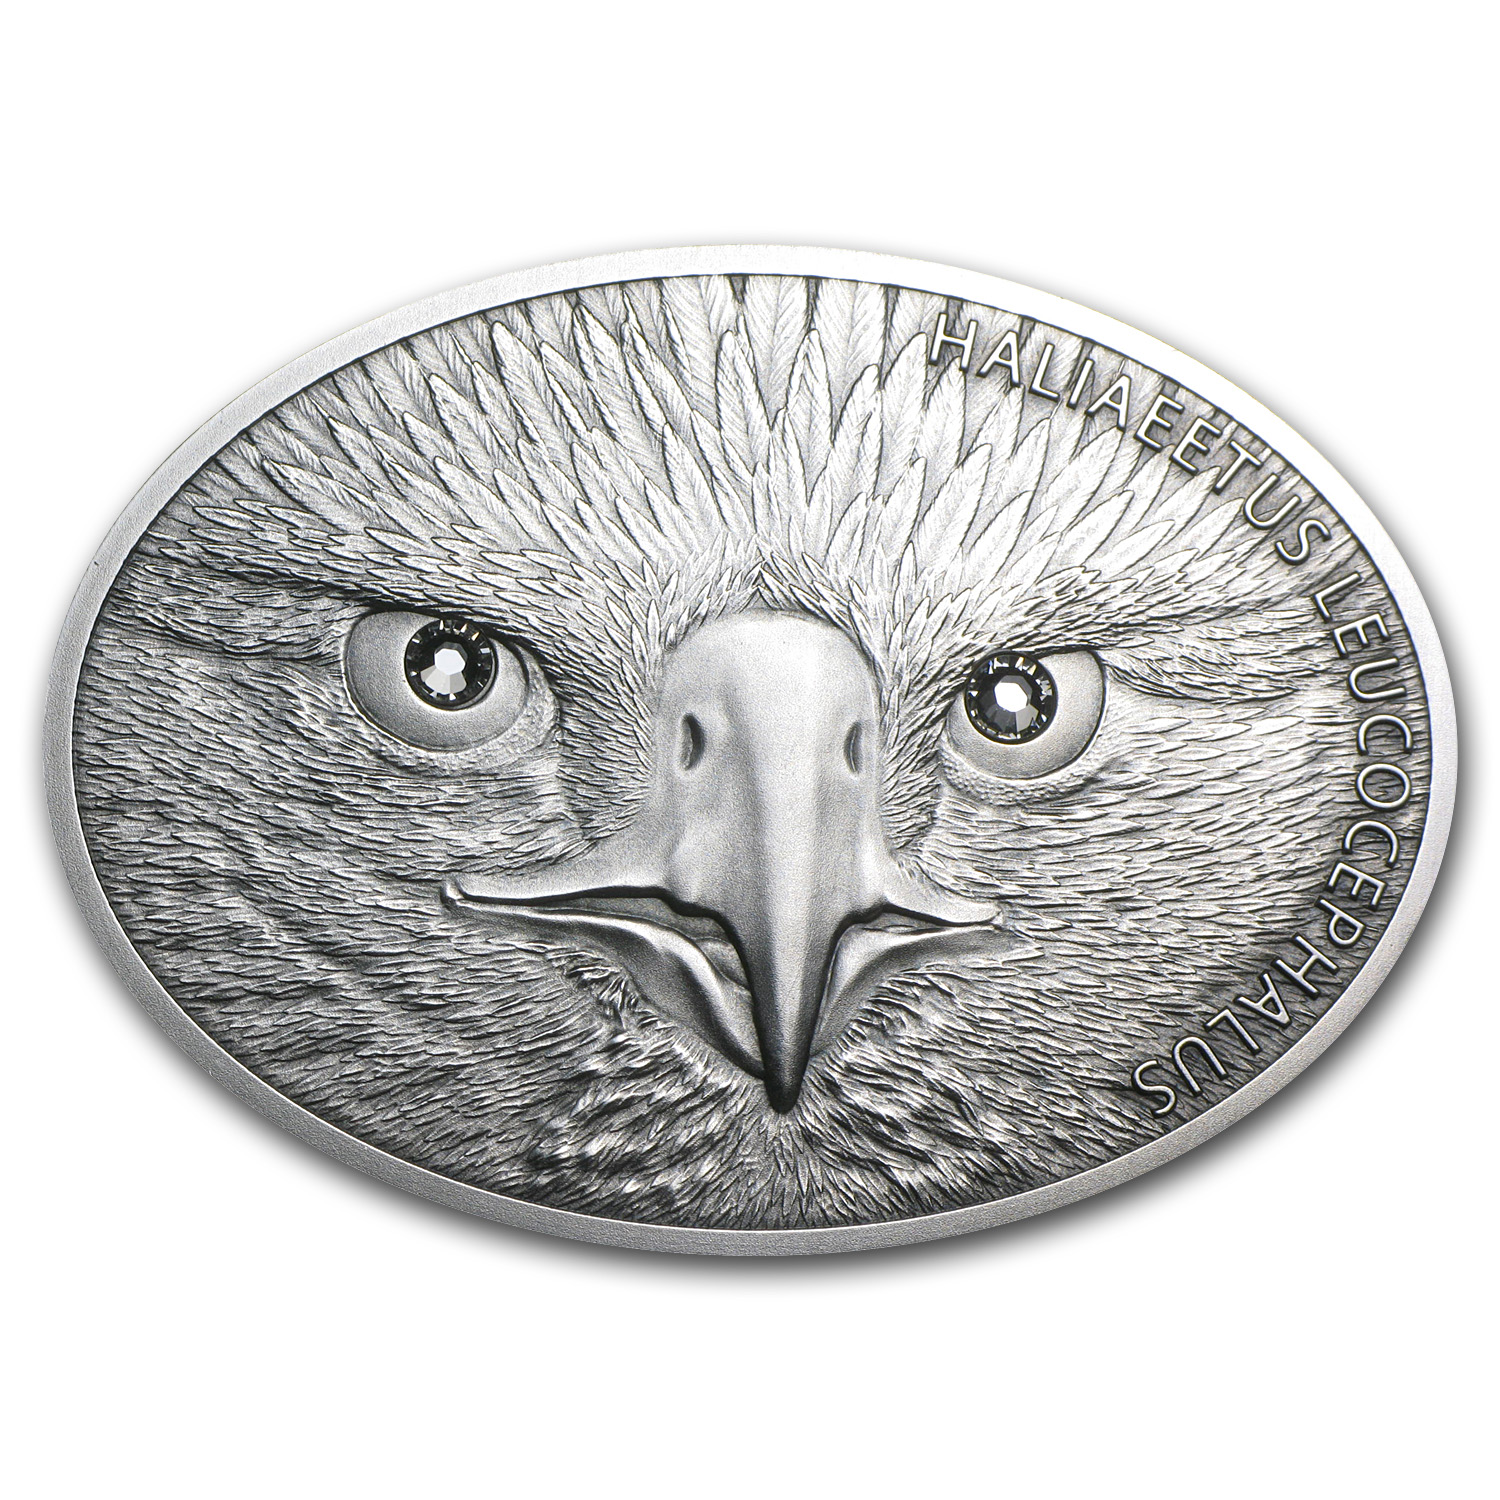 2013 Fiji 1 oz Silver $10 Fascinating Wildlife Bald Eagle